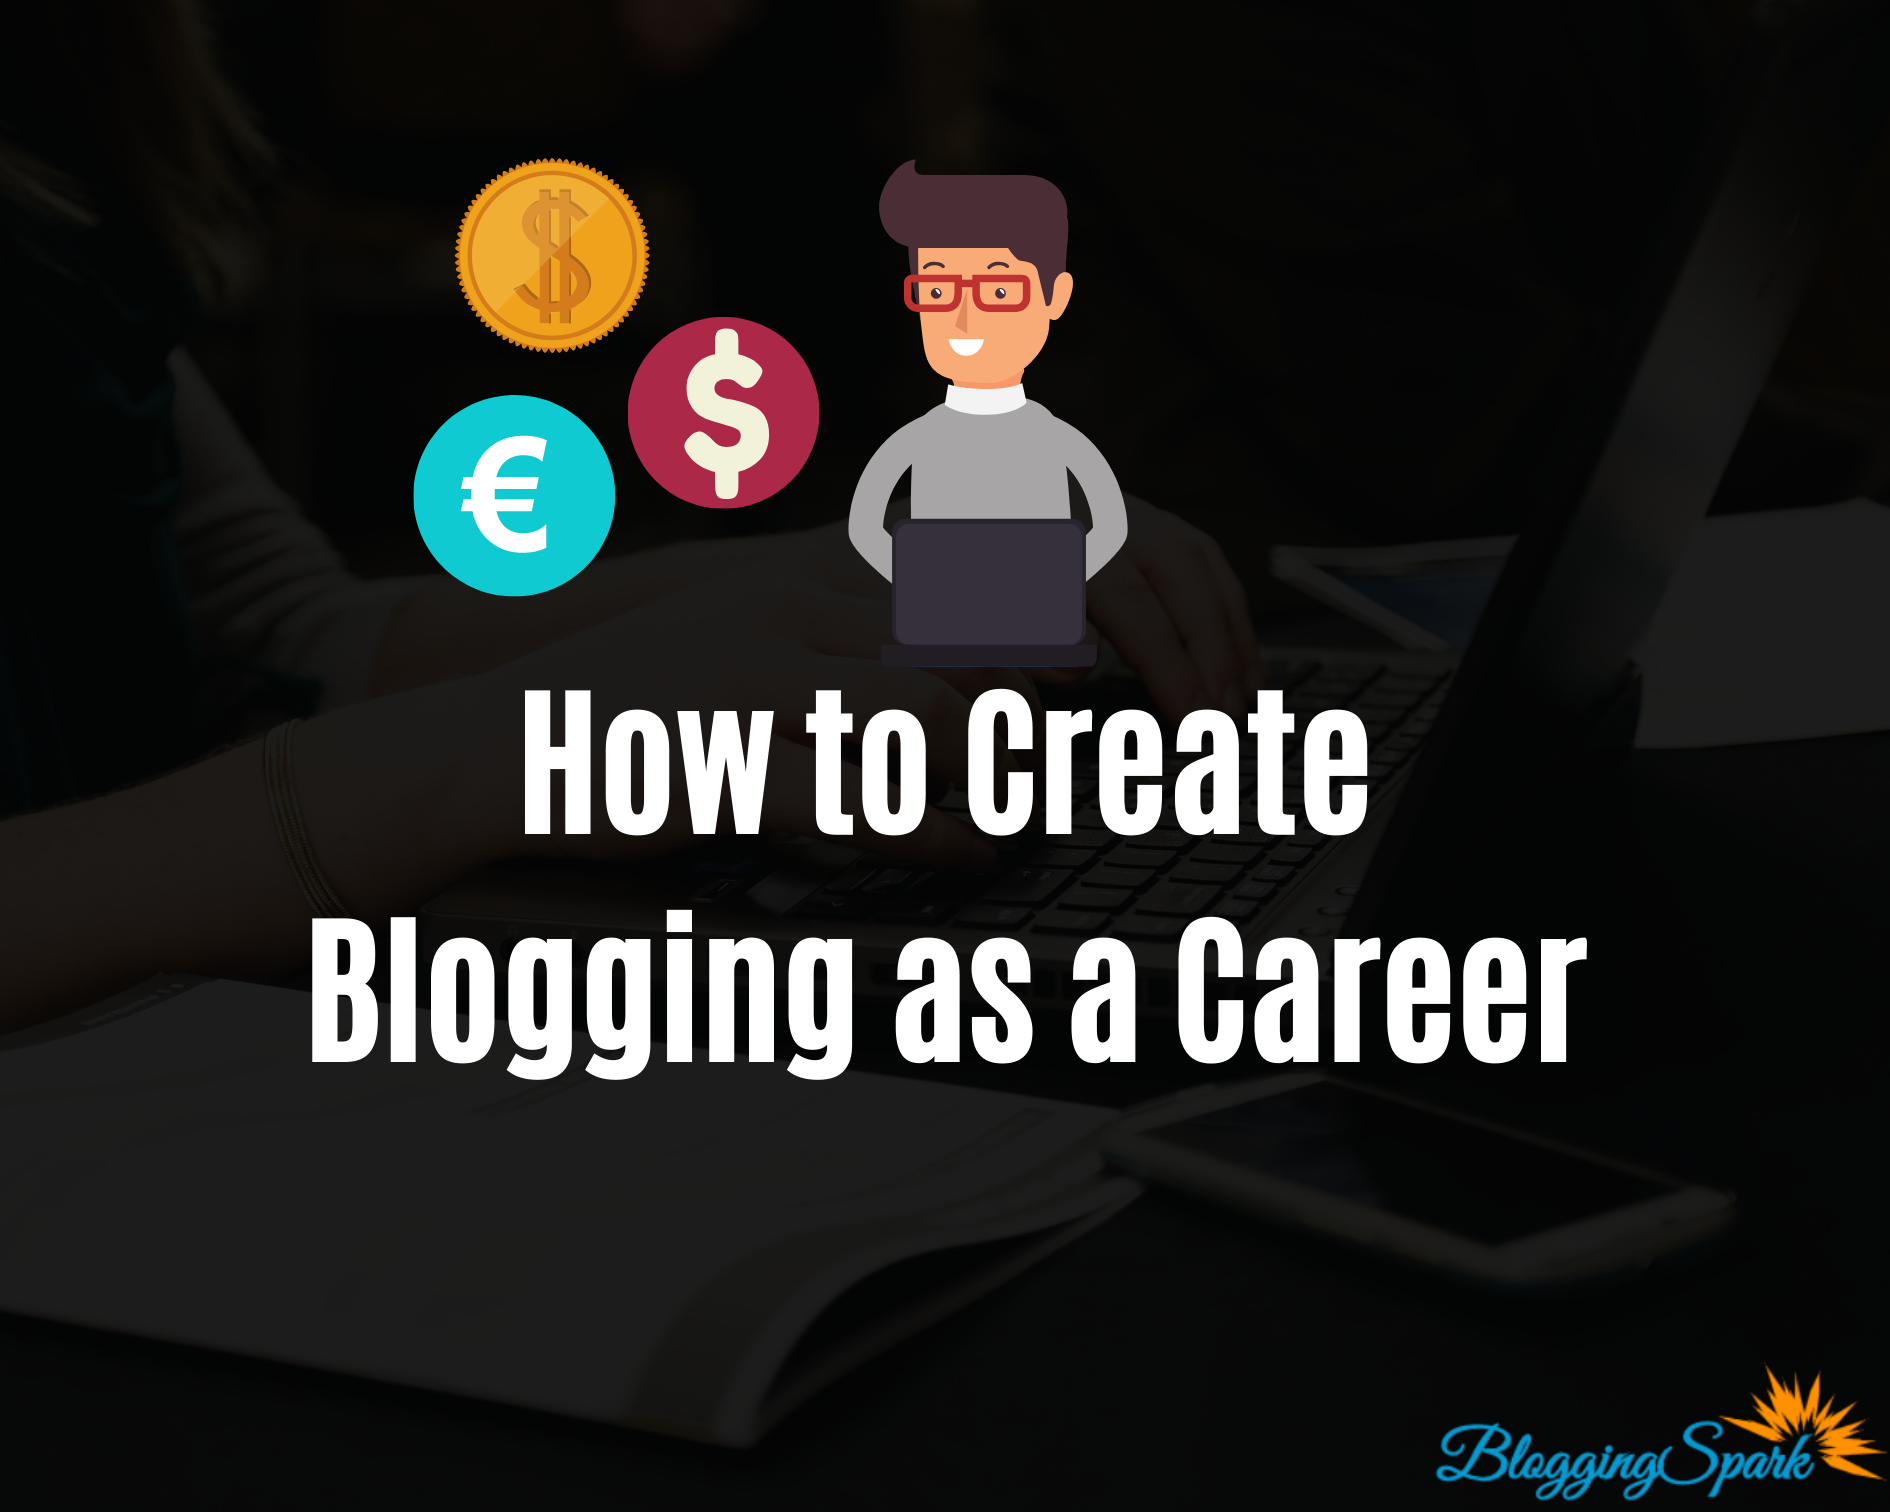 How to Make Blogging as a Career in 2021